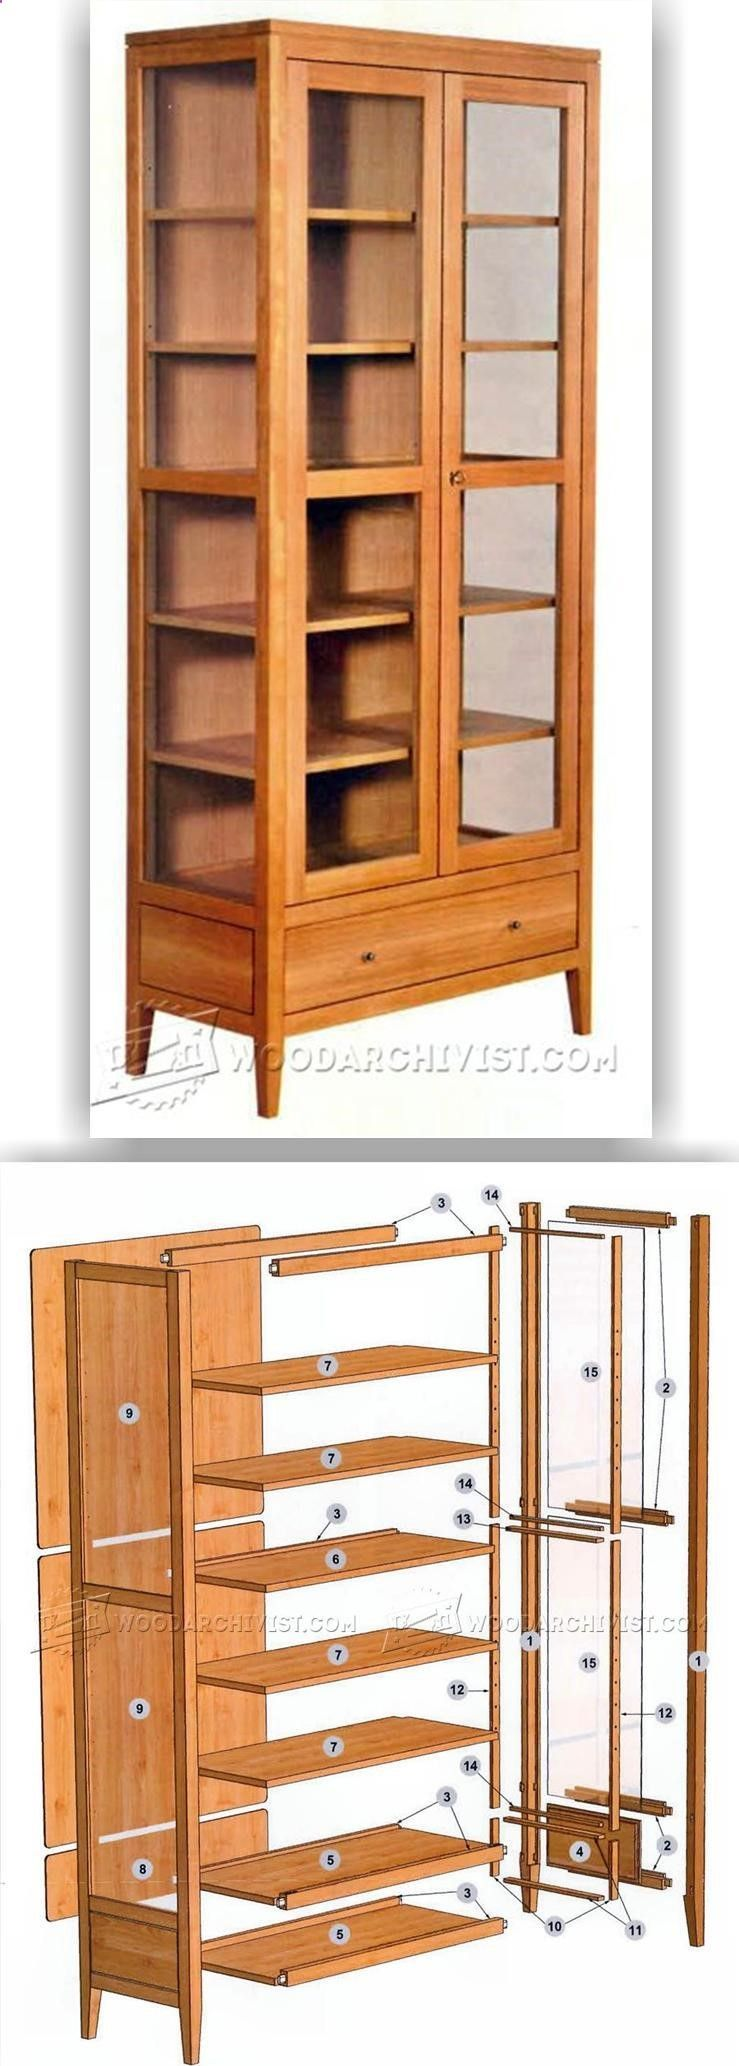 Showcase Cabinet Plans Furniture Plans And Projects Woodarchivist Com Woodworking Furniture Plans Furniture Projects Wood Diy